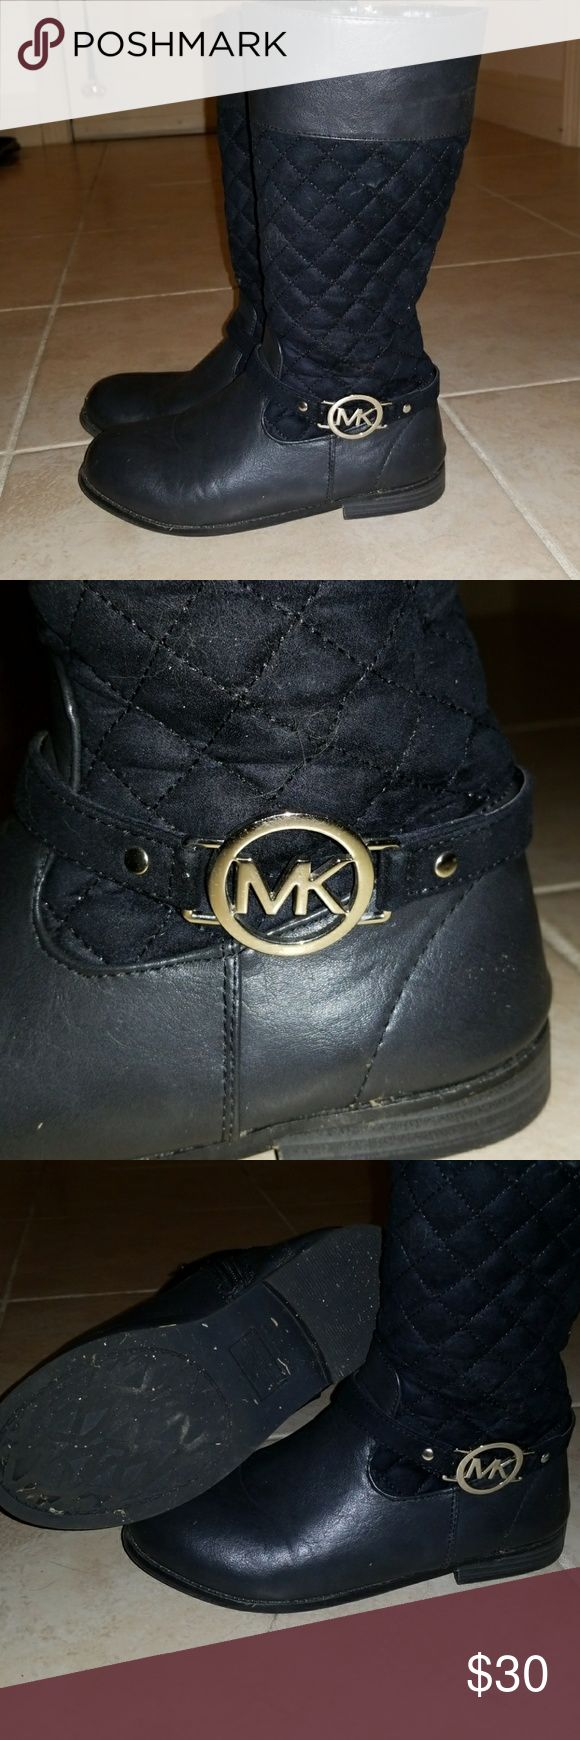 MK BOOTS 🔥LIMITED TIME 🔥 Kids, SIZE US 3 Michael Kors Shoes